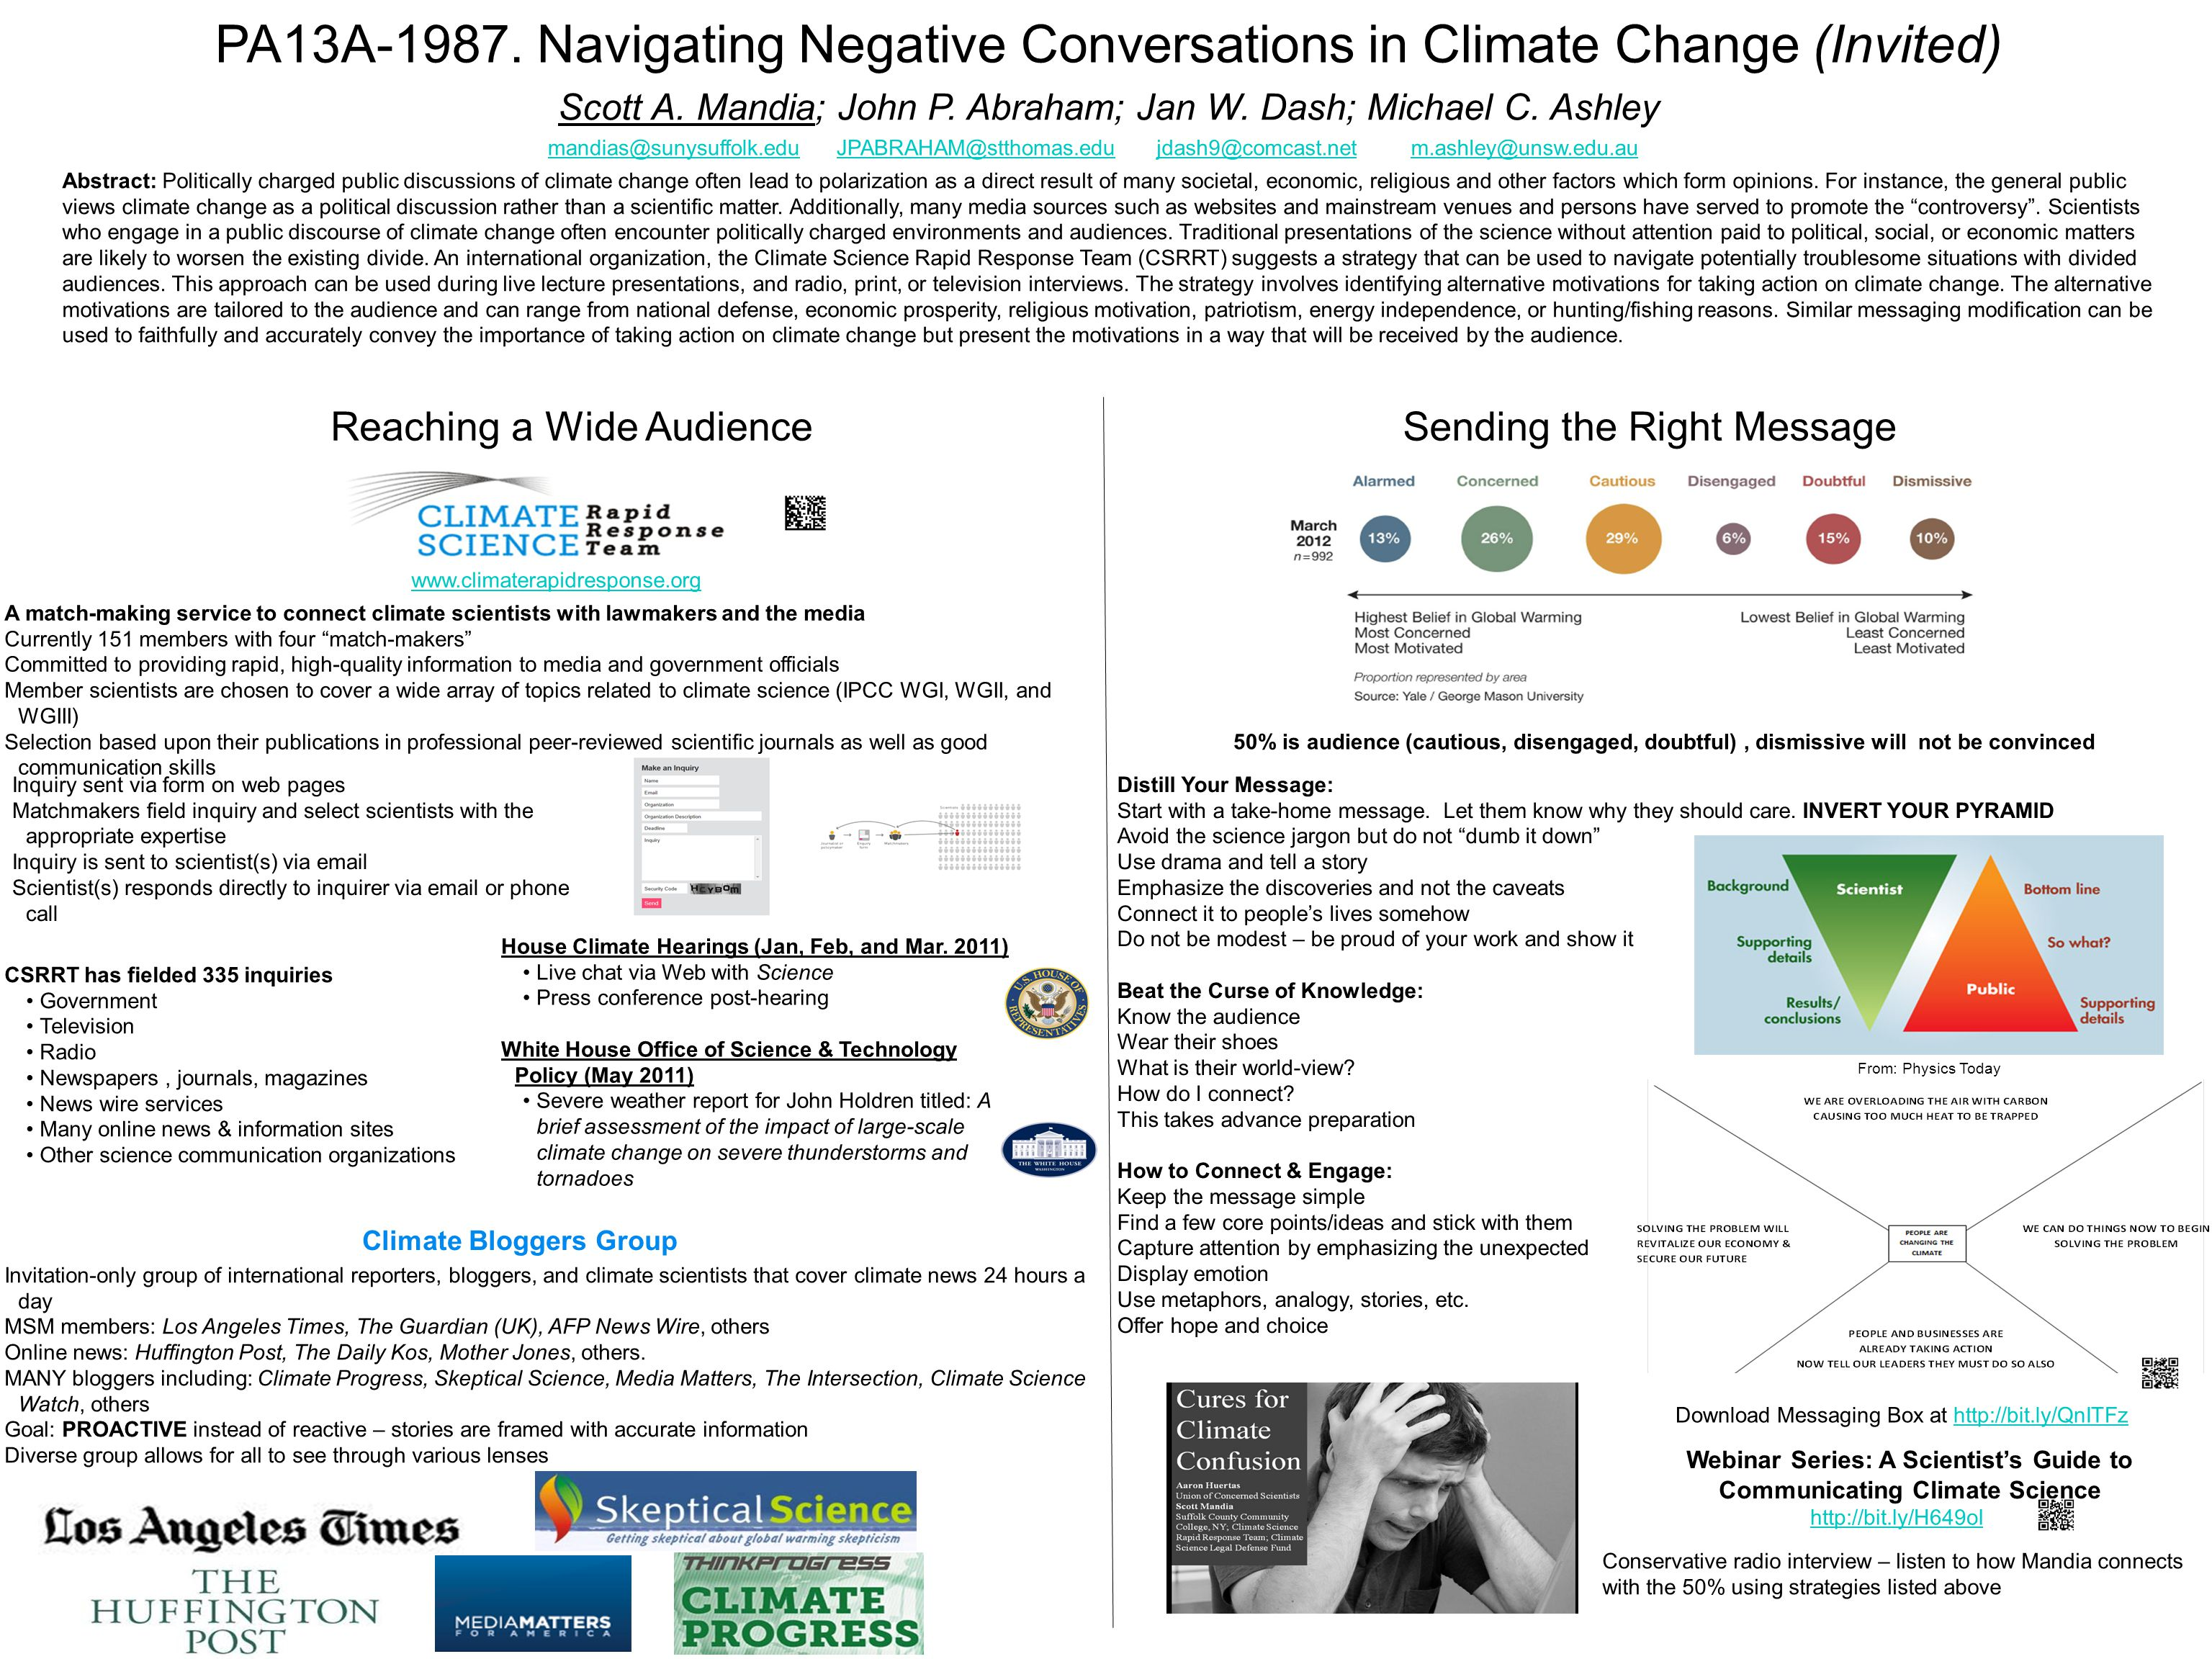 PA13A-1987. Navigating Negative Conversations in Climate Change (Invited) Scott A. Mandia; John P. Abraham; Jan W. Dash; Michael C. Ashley Abstract: P